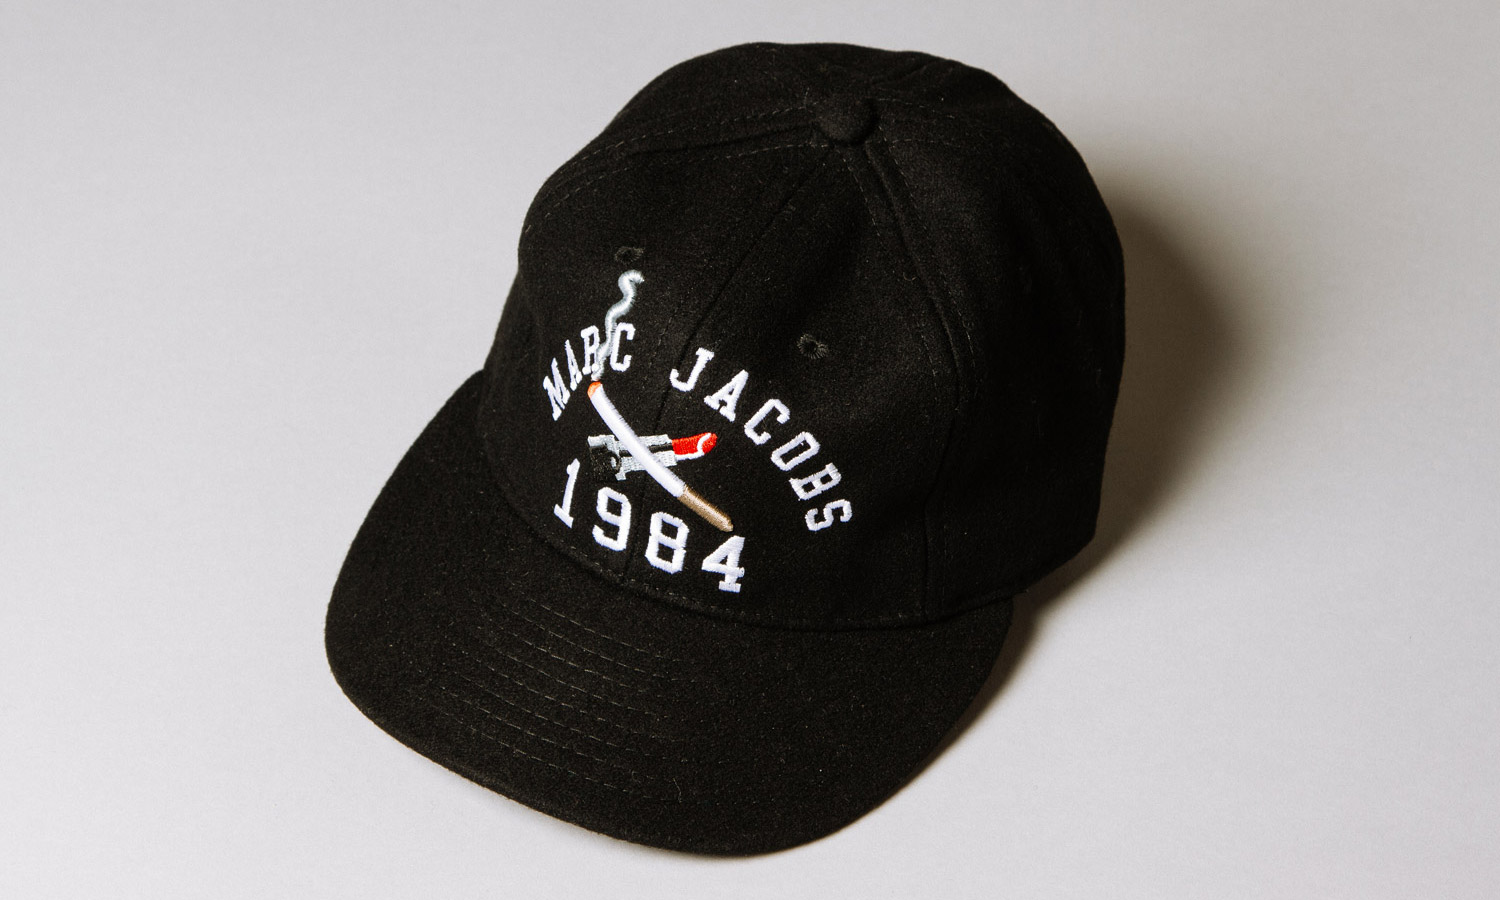 Marc-Jacobs-Ebbets-Baseball-Hat-feature